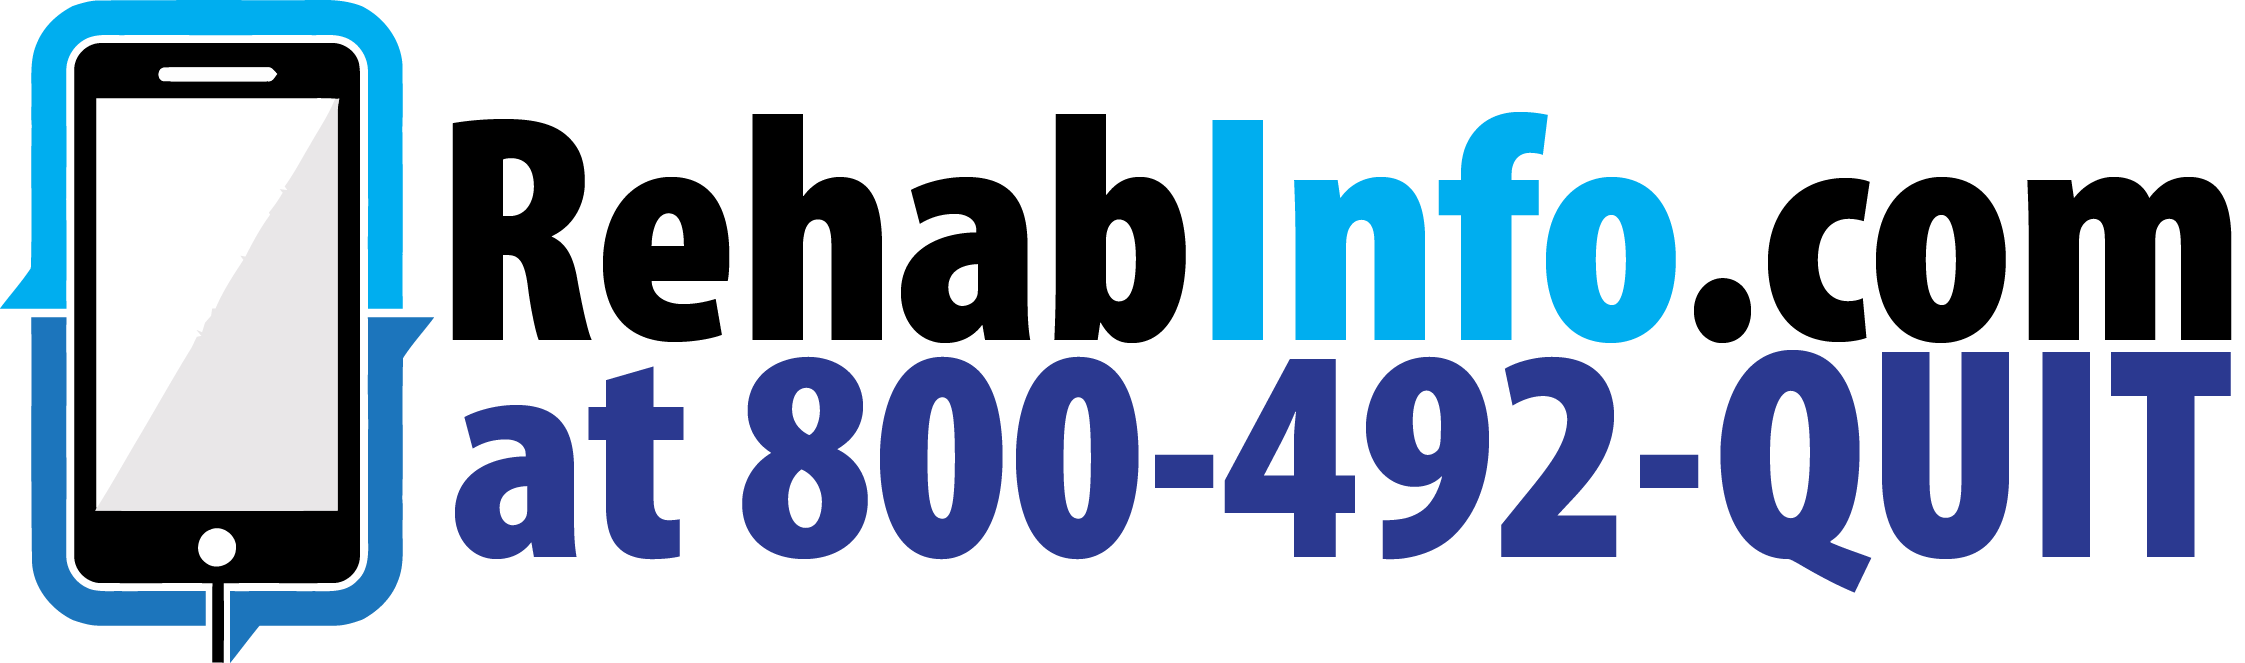 RehabInfo.com Upgrades Website to Provide Greater Access to those Battling Addictions